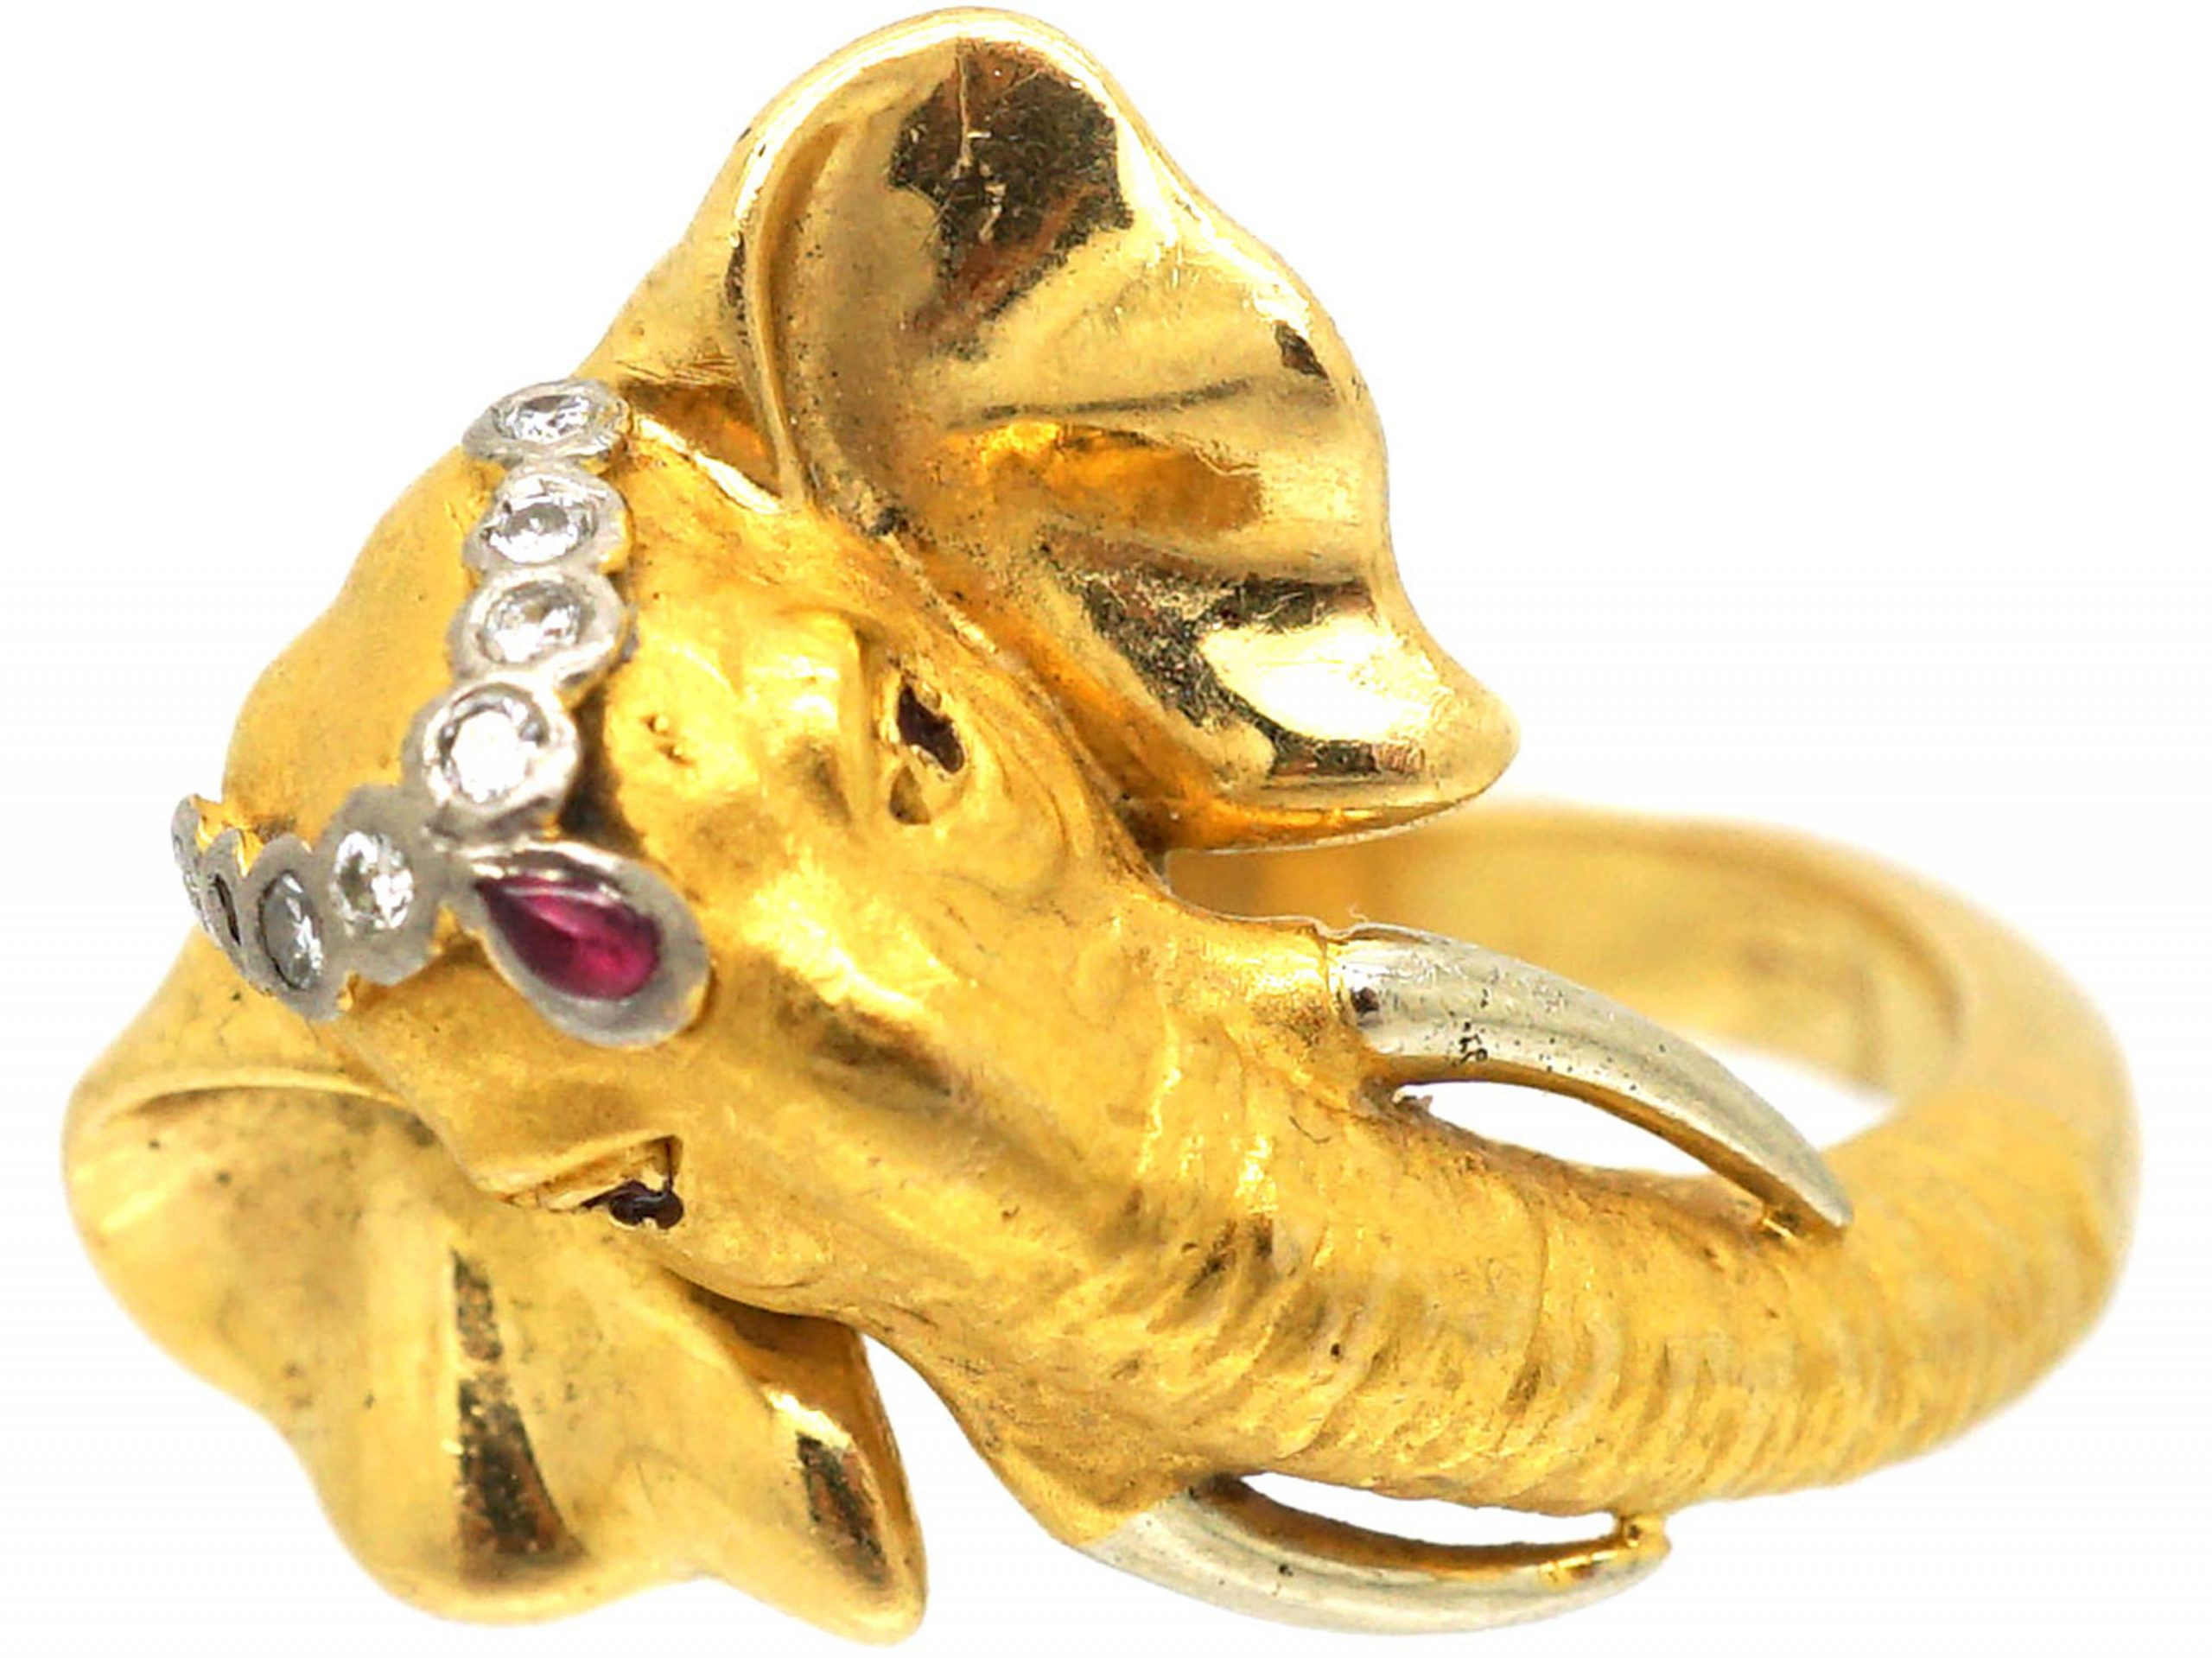 18ct Gold Ring of an Elephant by Carrera Y Carrera